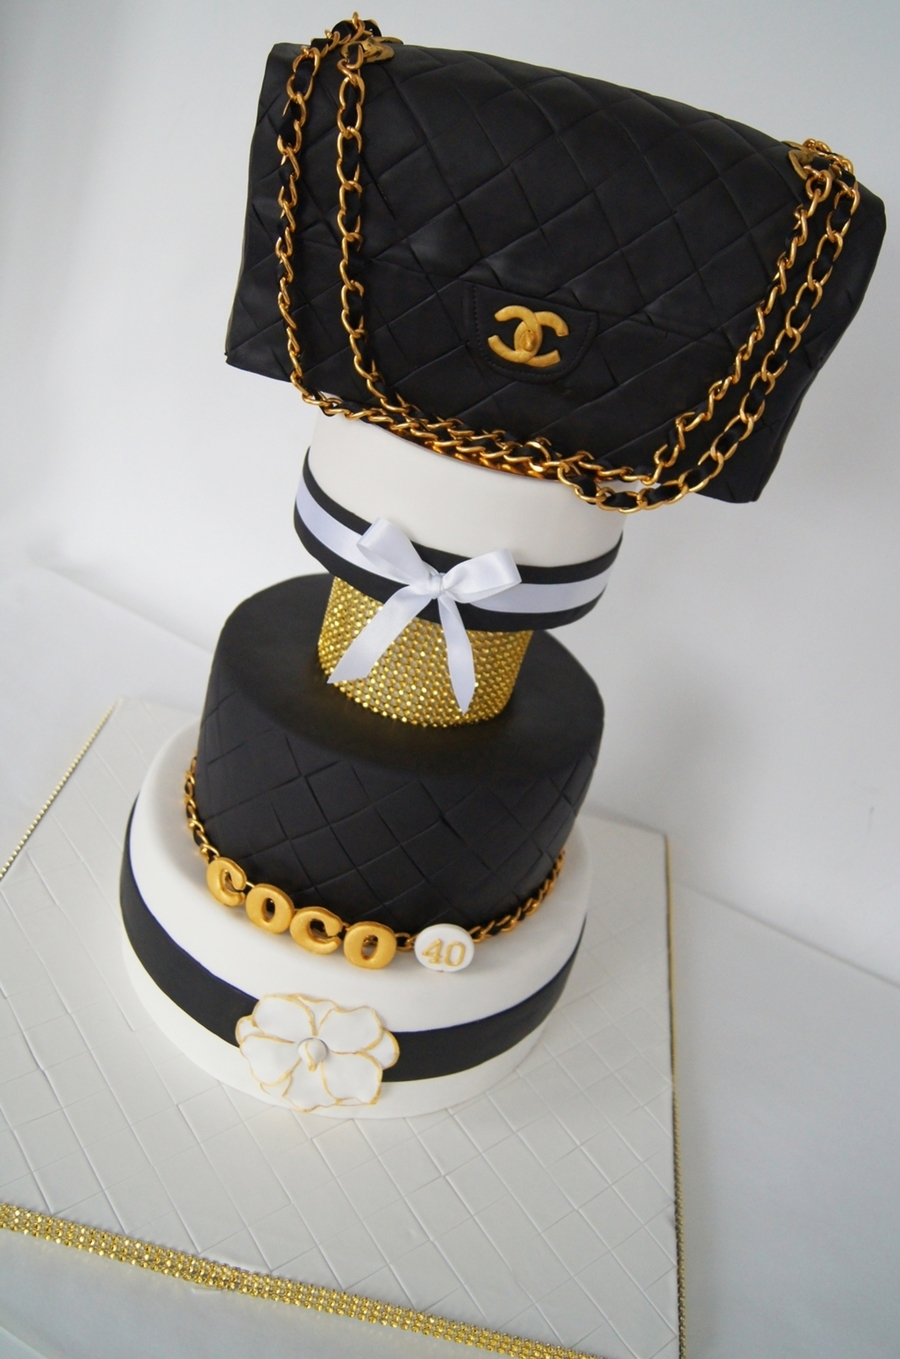 Chanel Inspired Cake Cakecentral Com